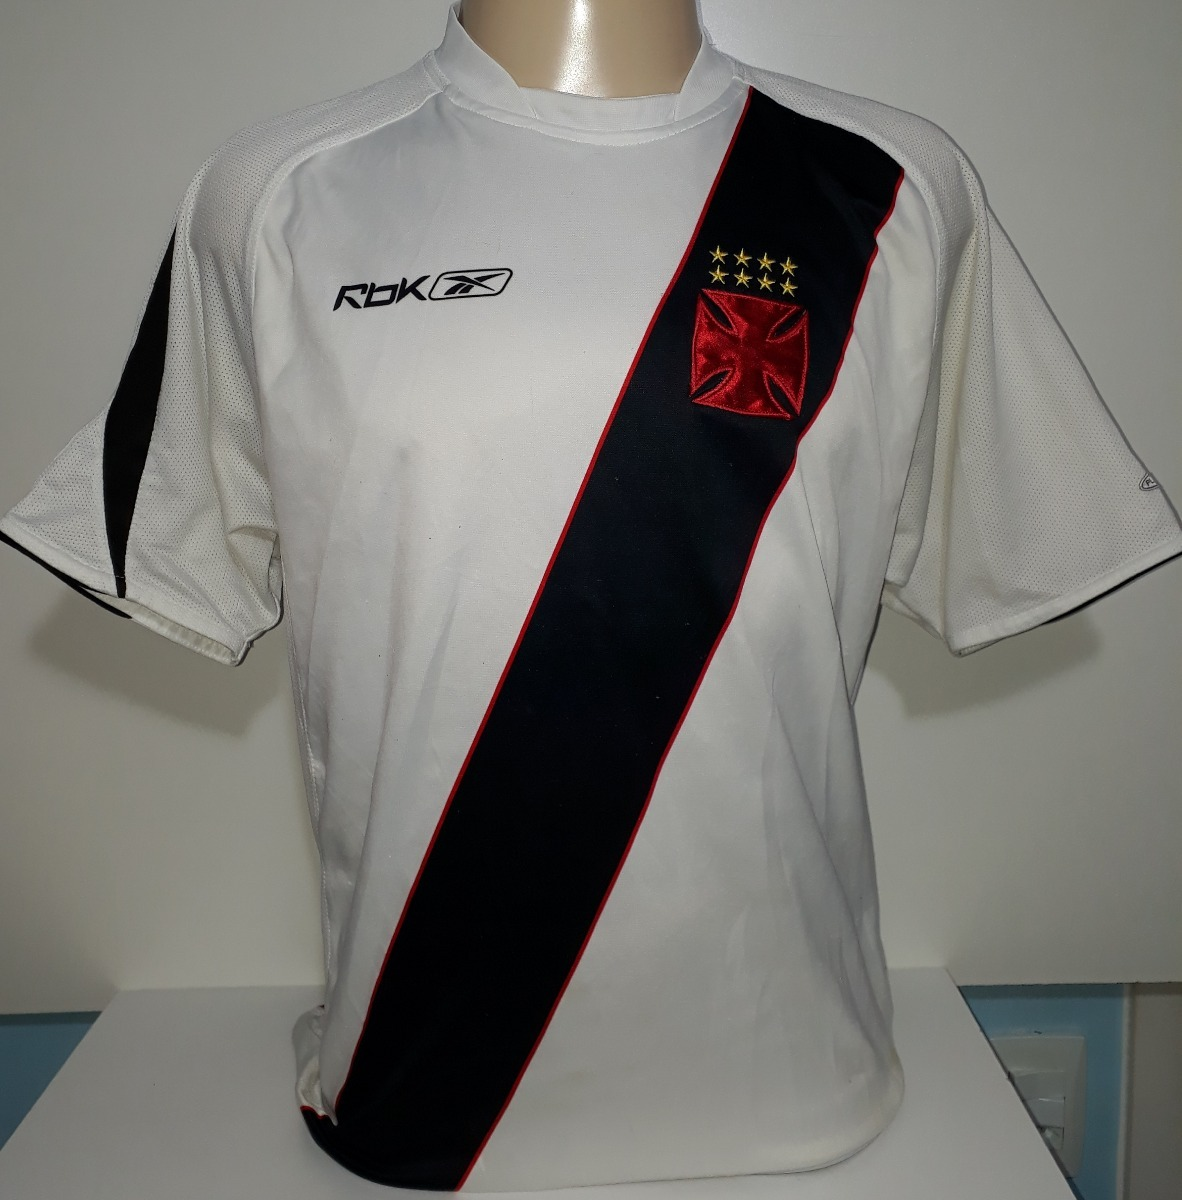 ed26fcb9cd Camisa Do Vasco Reebok Original 2006   2007 - 07 - R  149